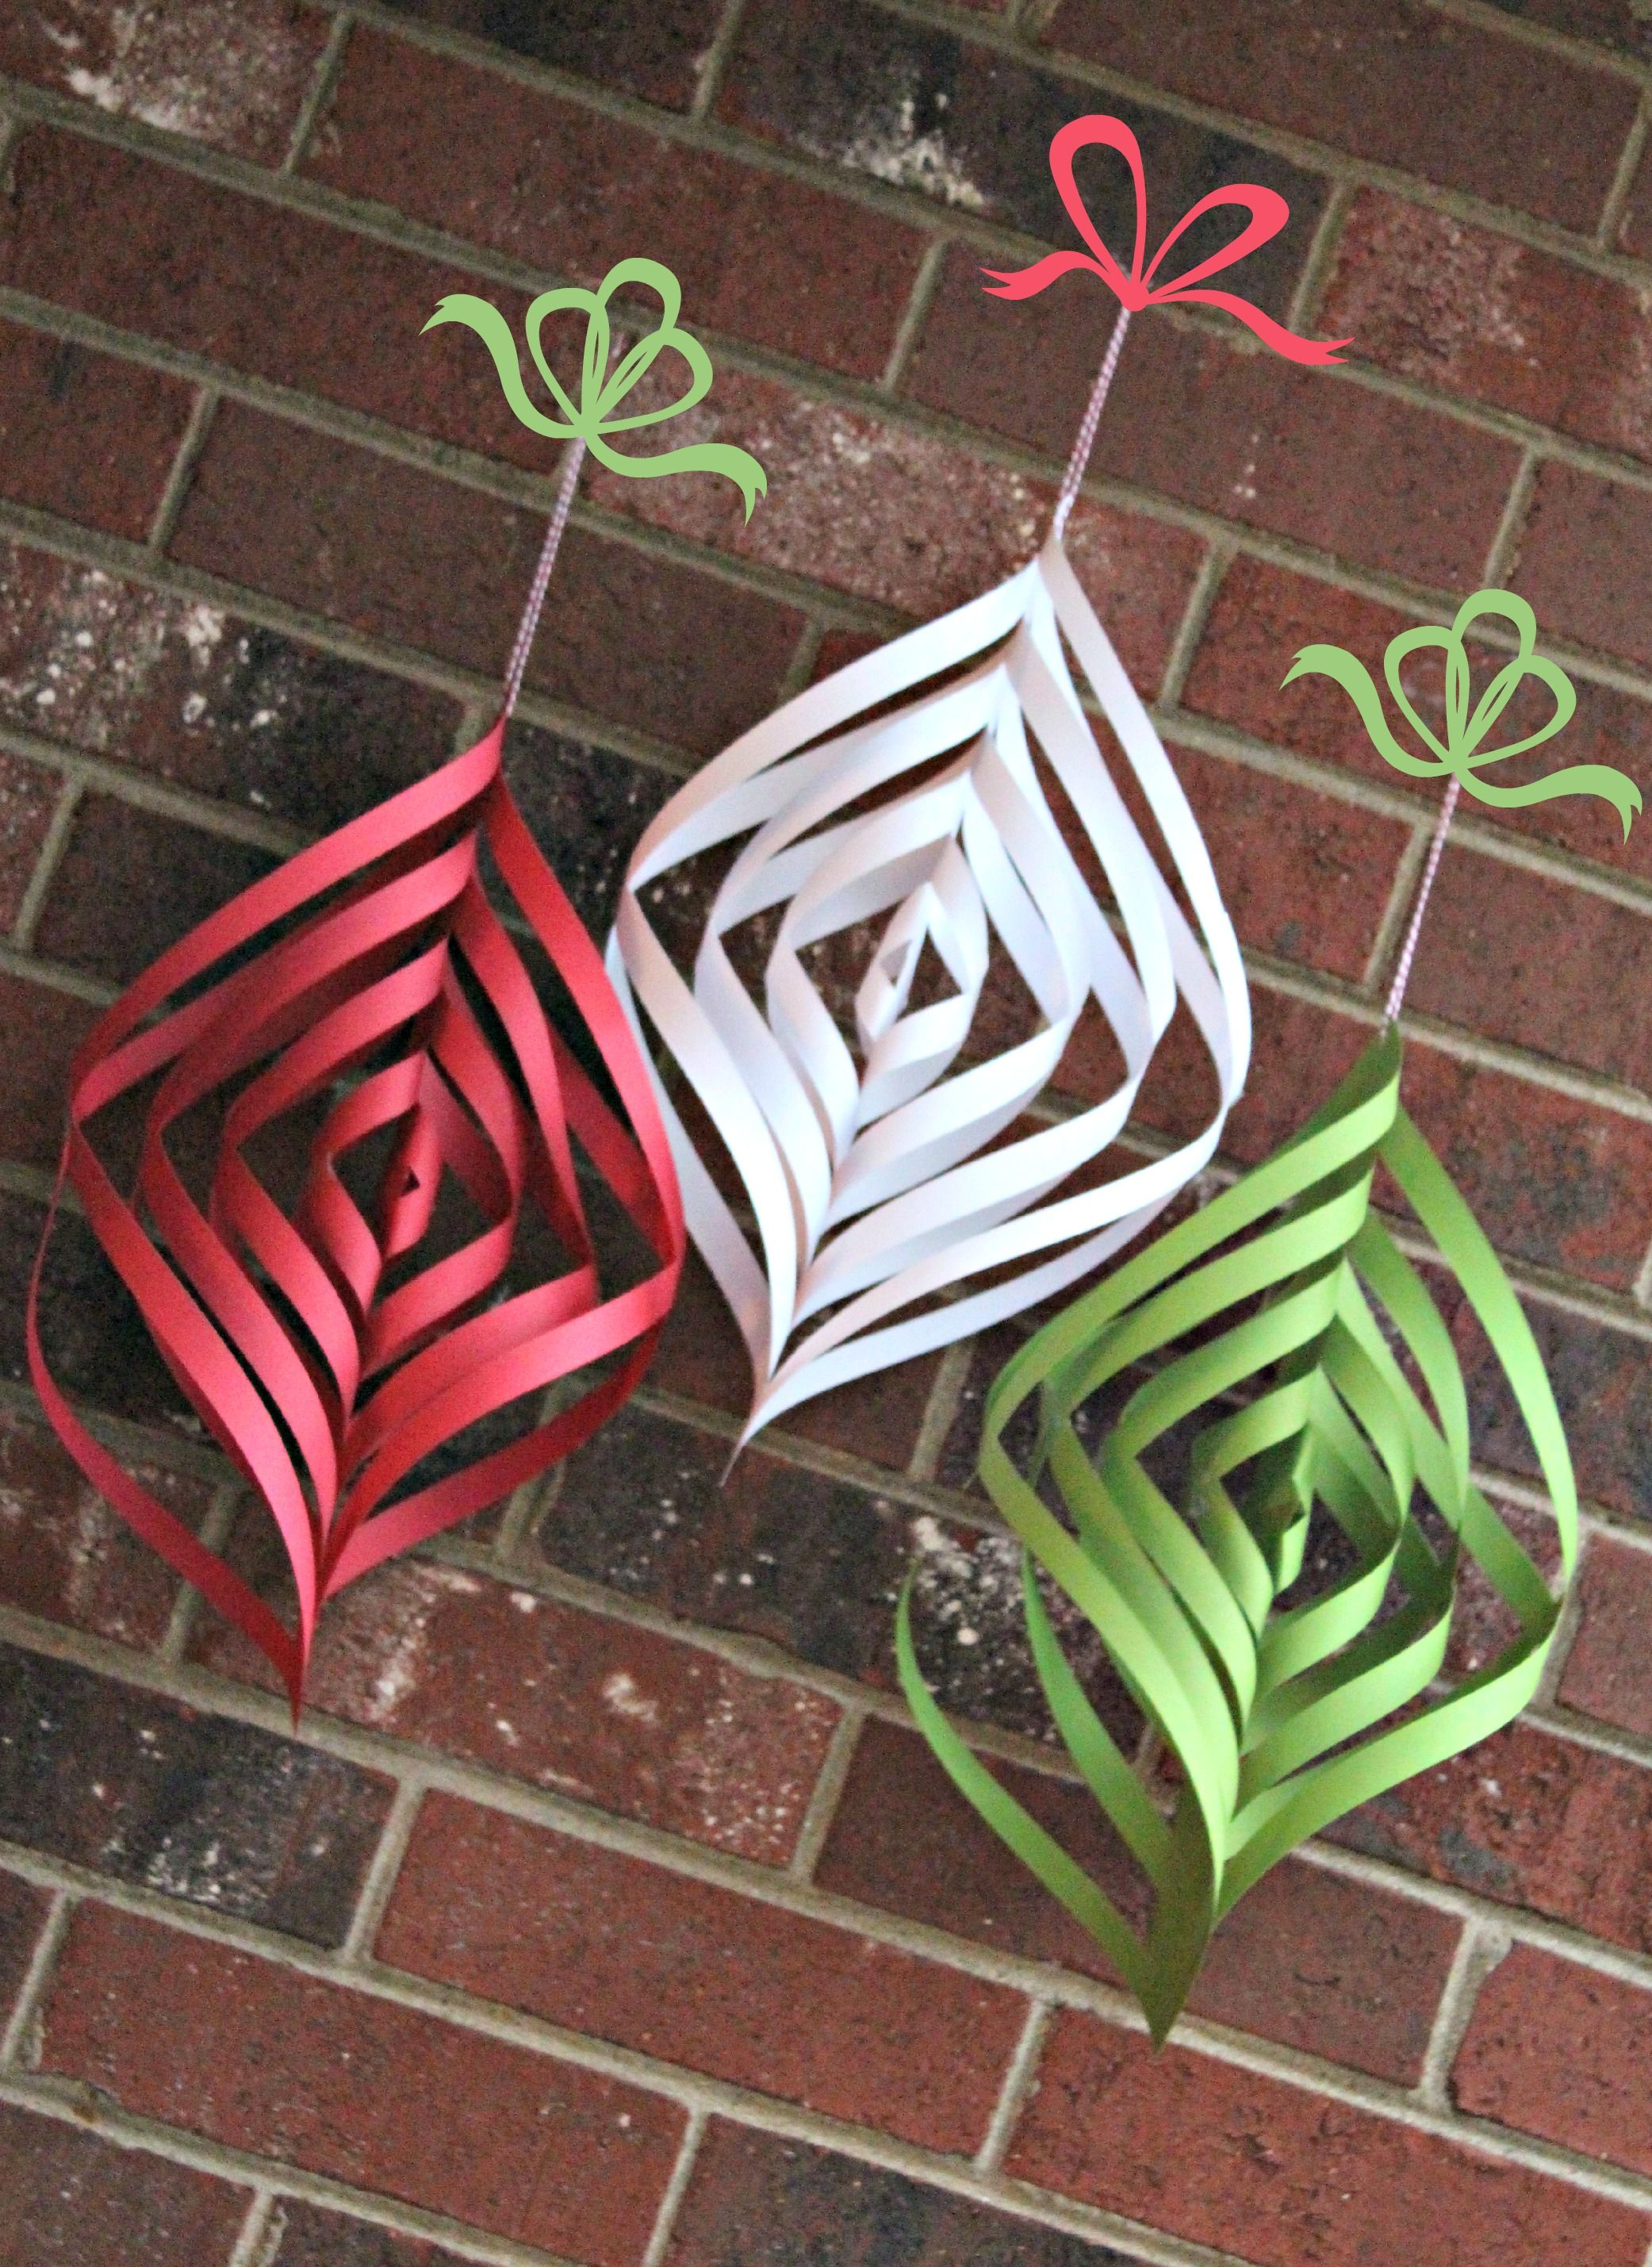 Christmas ornaments diy paper christmas ornament spirals christmas ornaments diy paper christmas ornament spirals jeuxipadfo Choice Image